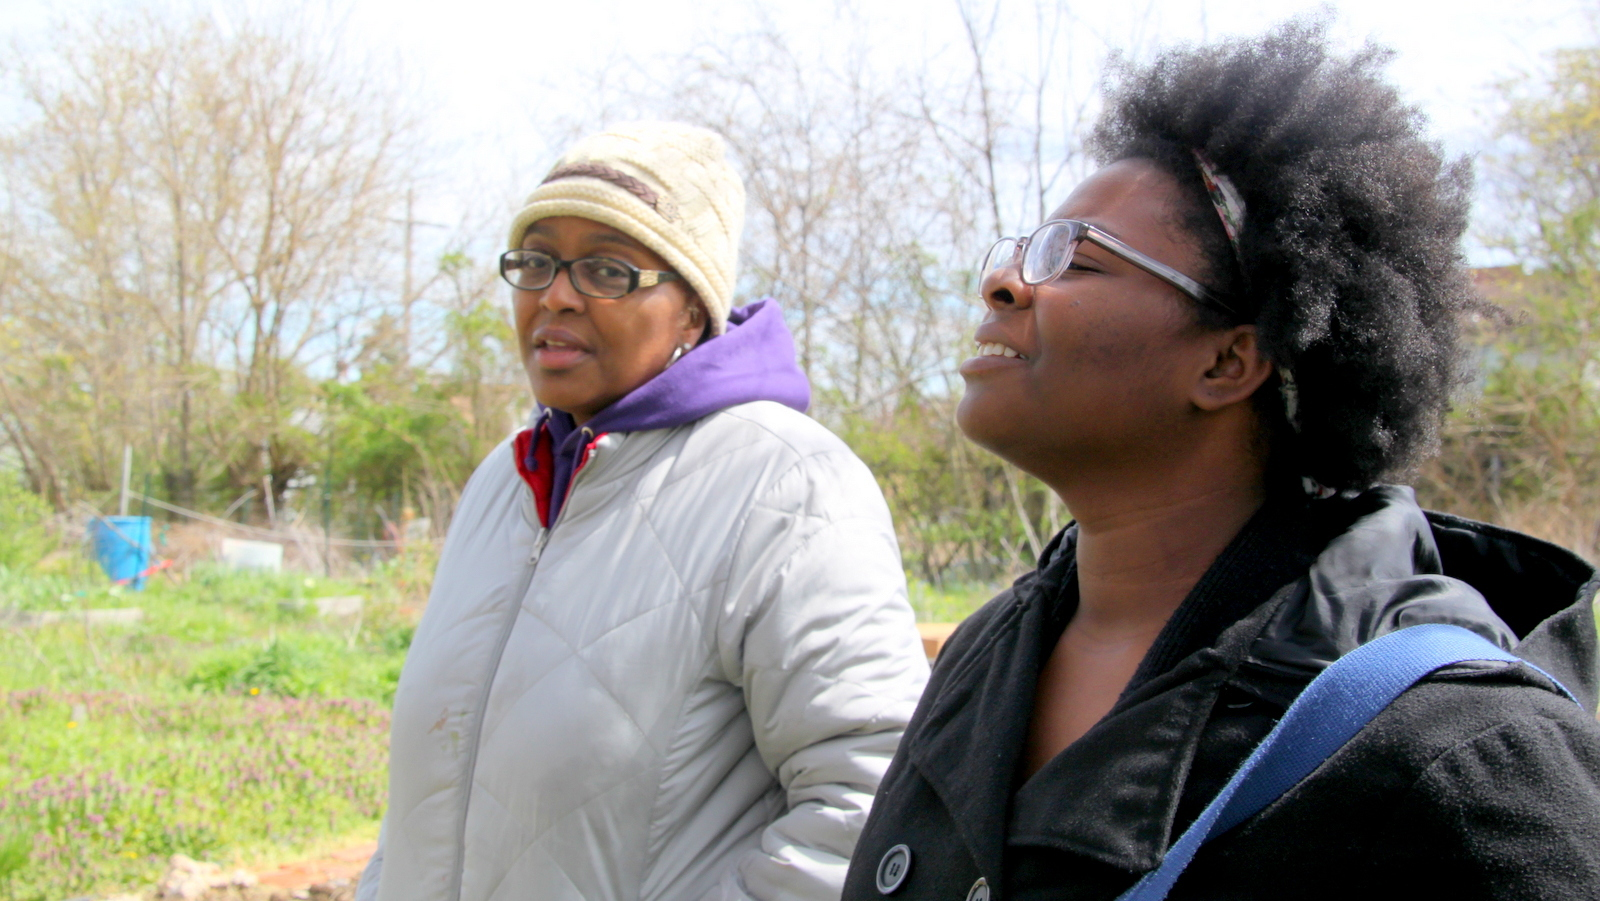 Activist Destiny Watford in the Filbert Street Garden in 2016 after the Maryland Department of the Environment declared Energy Answers' incinerator permit expired. At left, Rodette Jones. (Fern Shen)